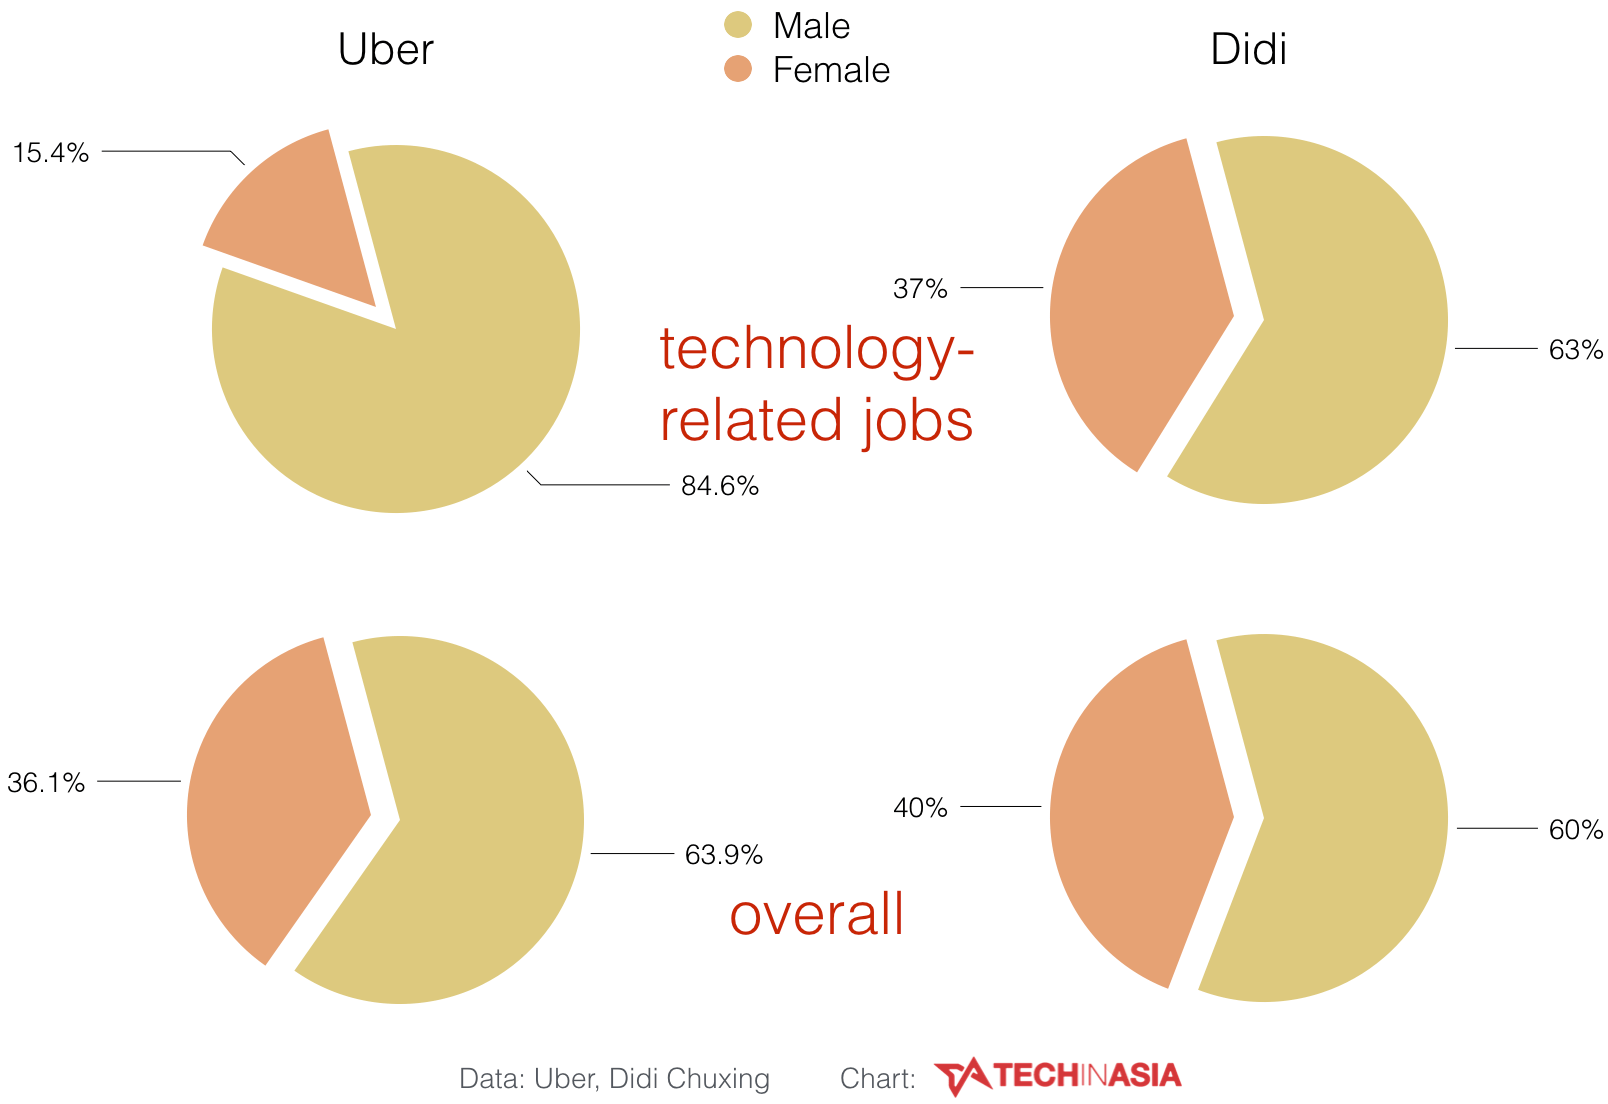 Uber, Didi on gender diversity in workplace - chart